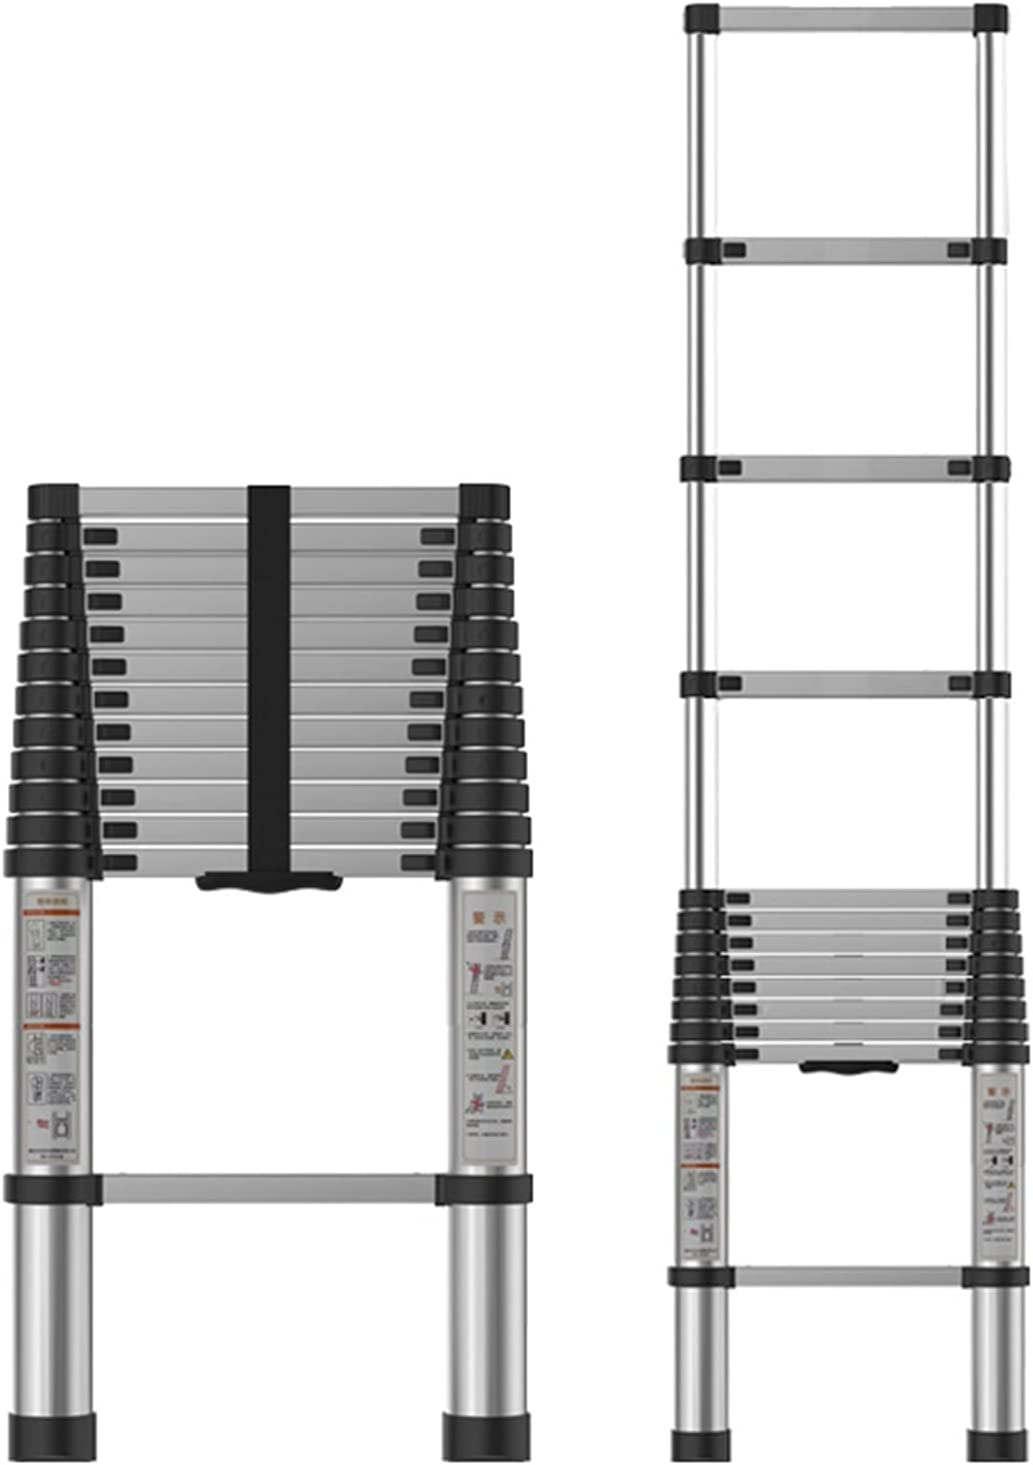 Direct stock discount WKLIANGYUANPING Telescoping Ladder Ladde 3.8M 12.5ft Inventory cleanup selling sale